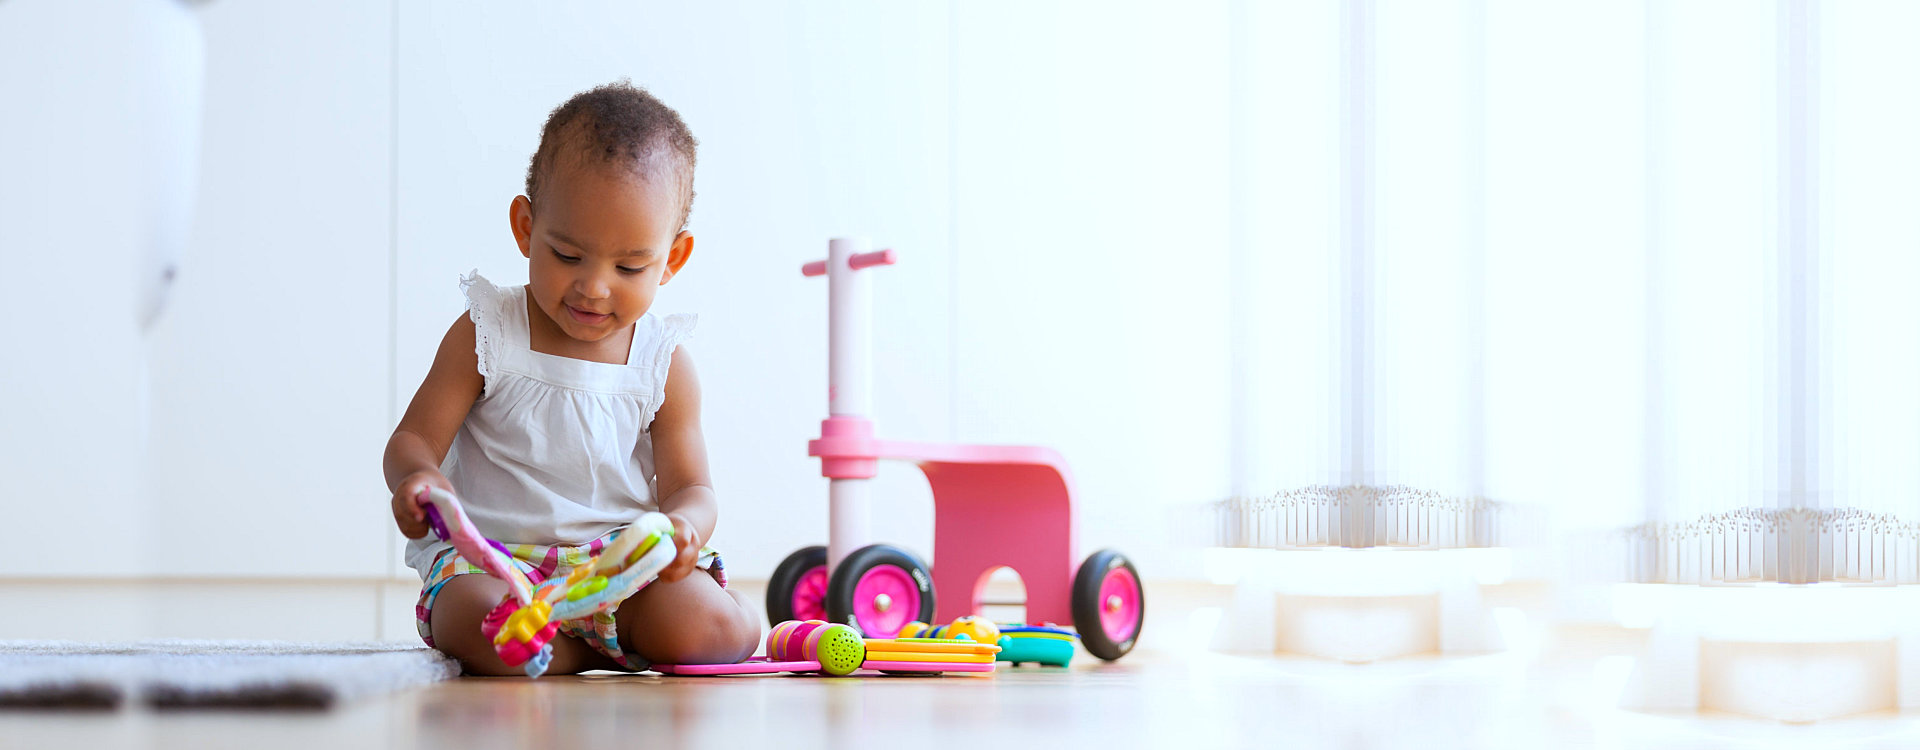 little girl playing with her toys